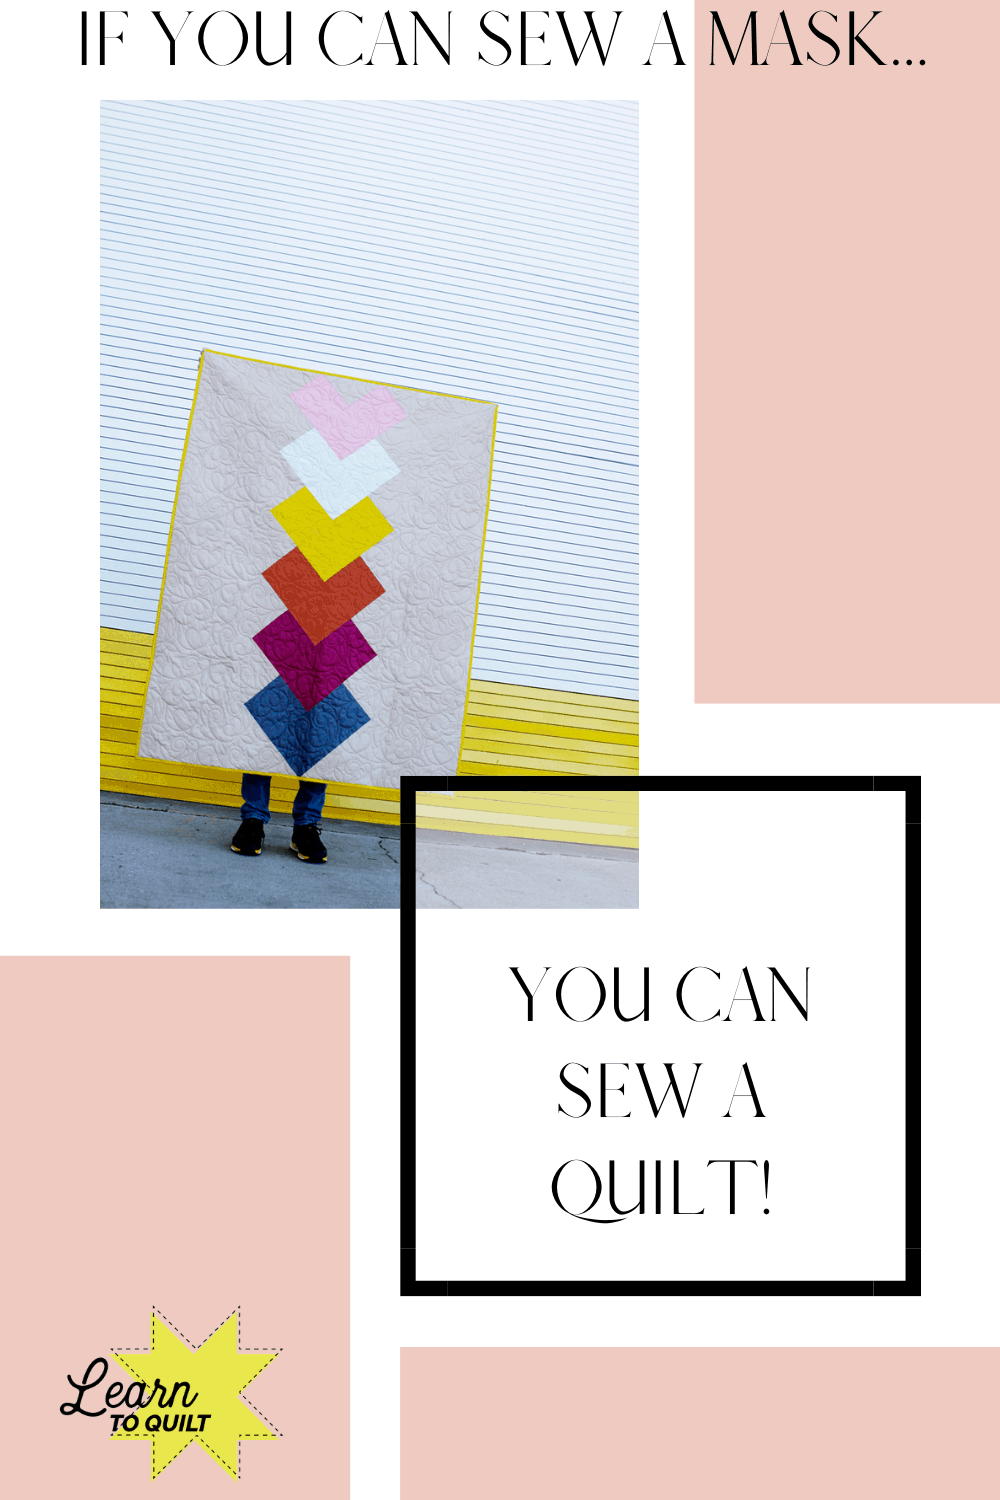 Learn to Quilt Course Videos